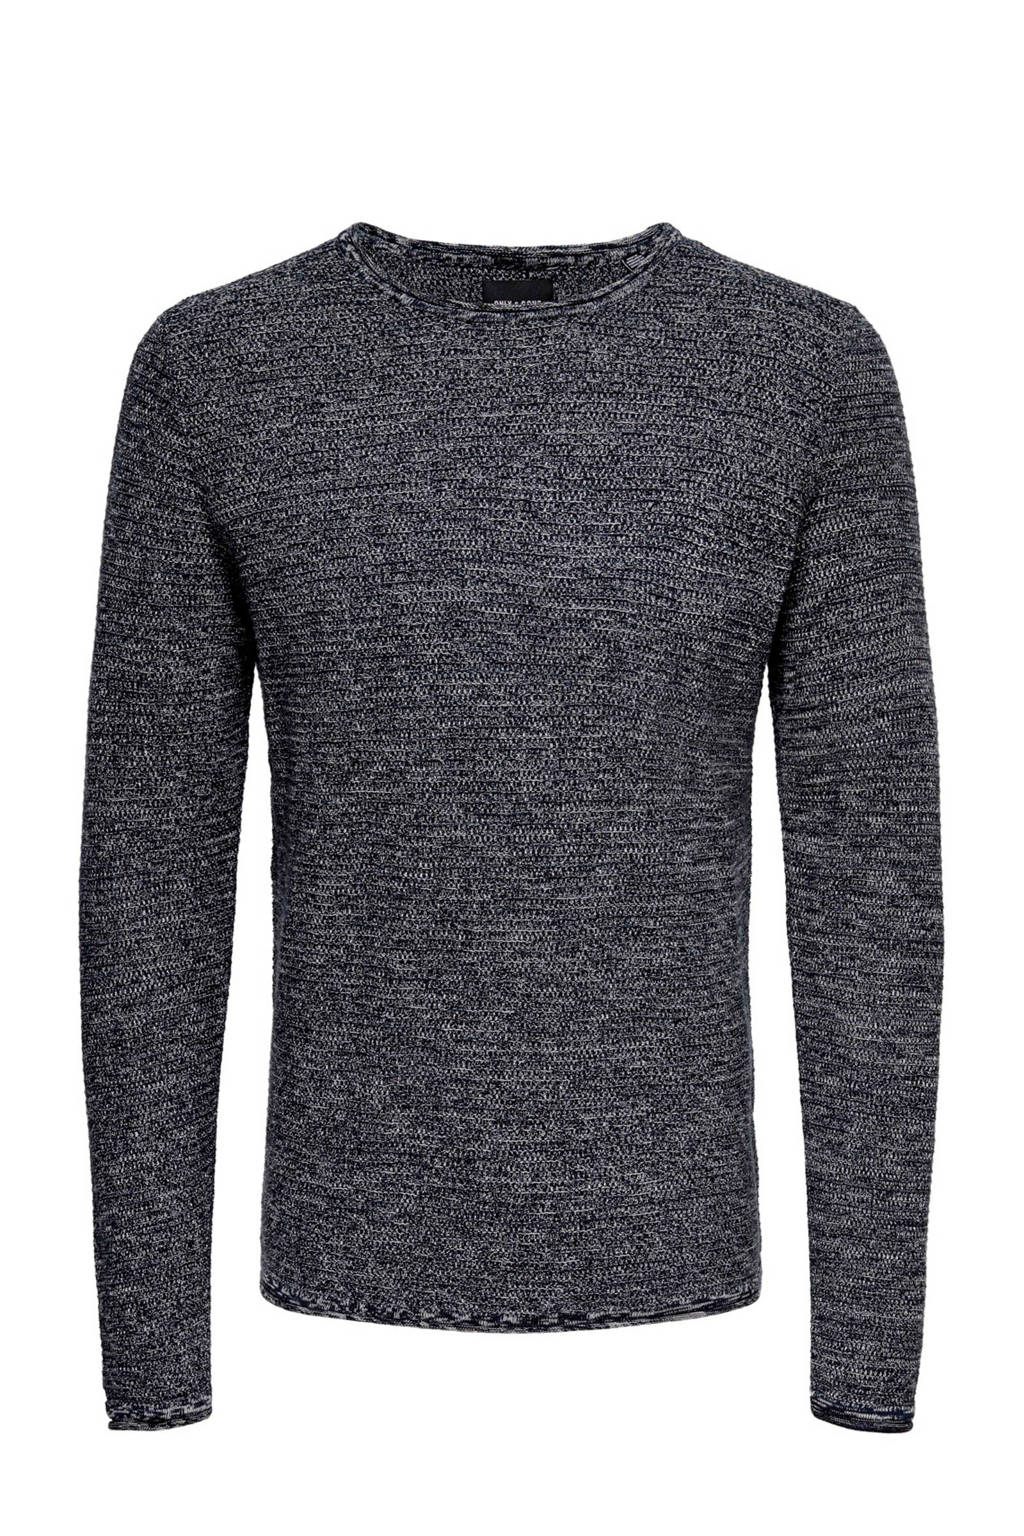 Only & Sons trui, Blauw